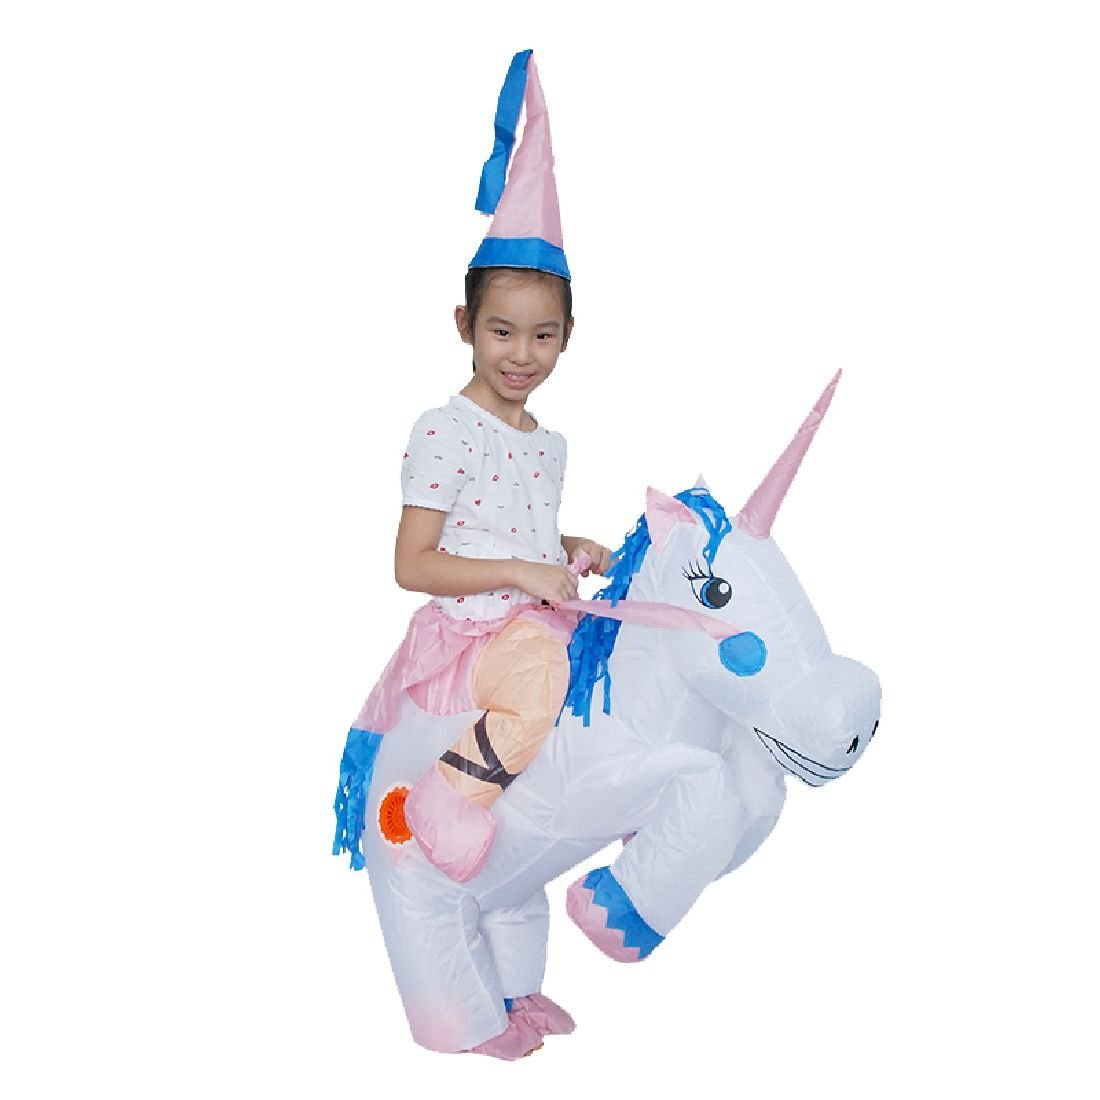 Inflatable Unicorn Costume Pegasus Costumes Holiday Party Dress Up by Crystalbella Inflatable Cos